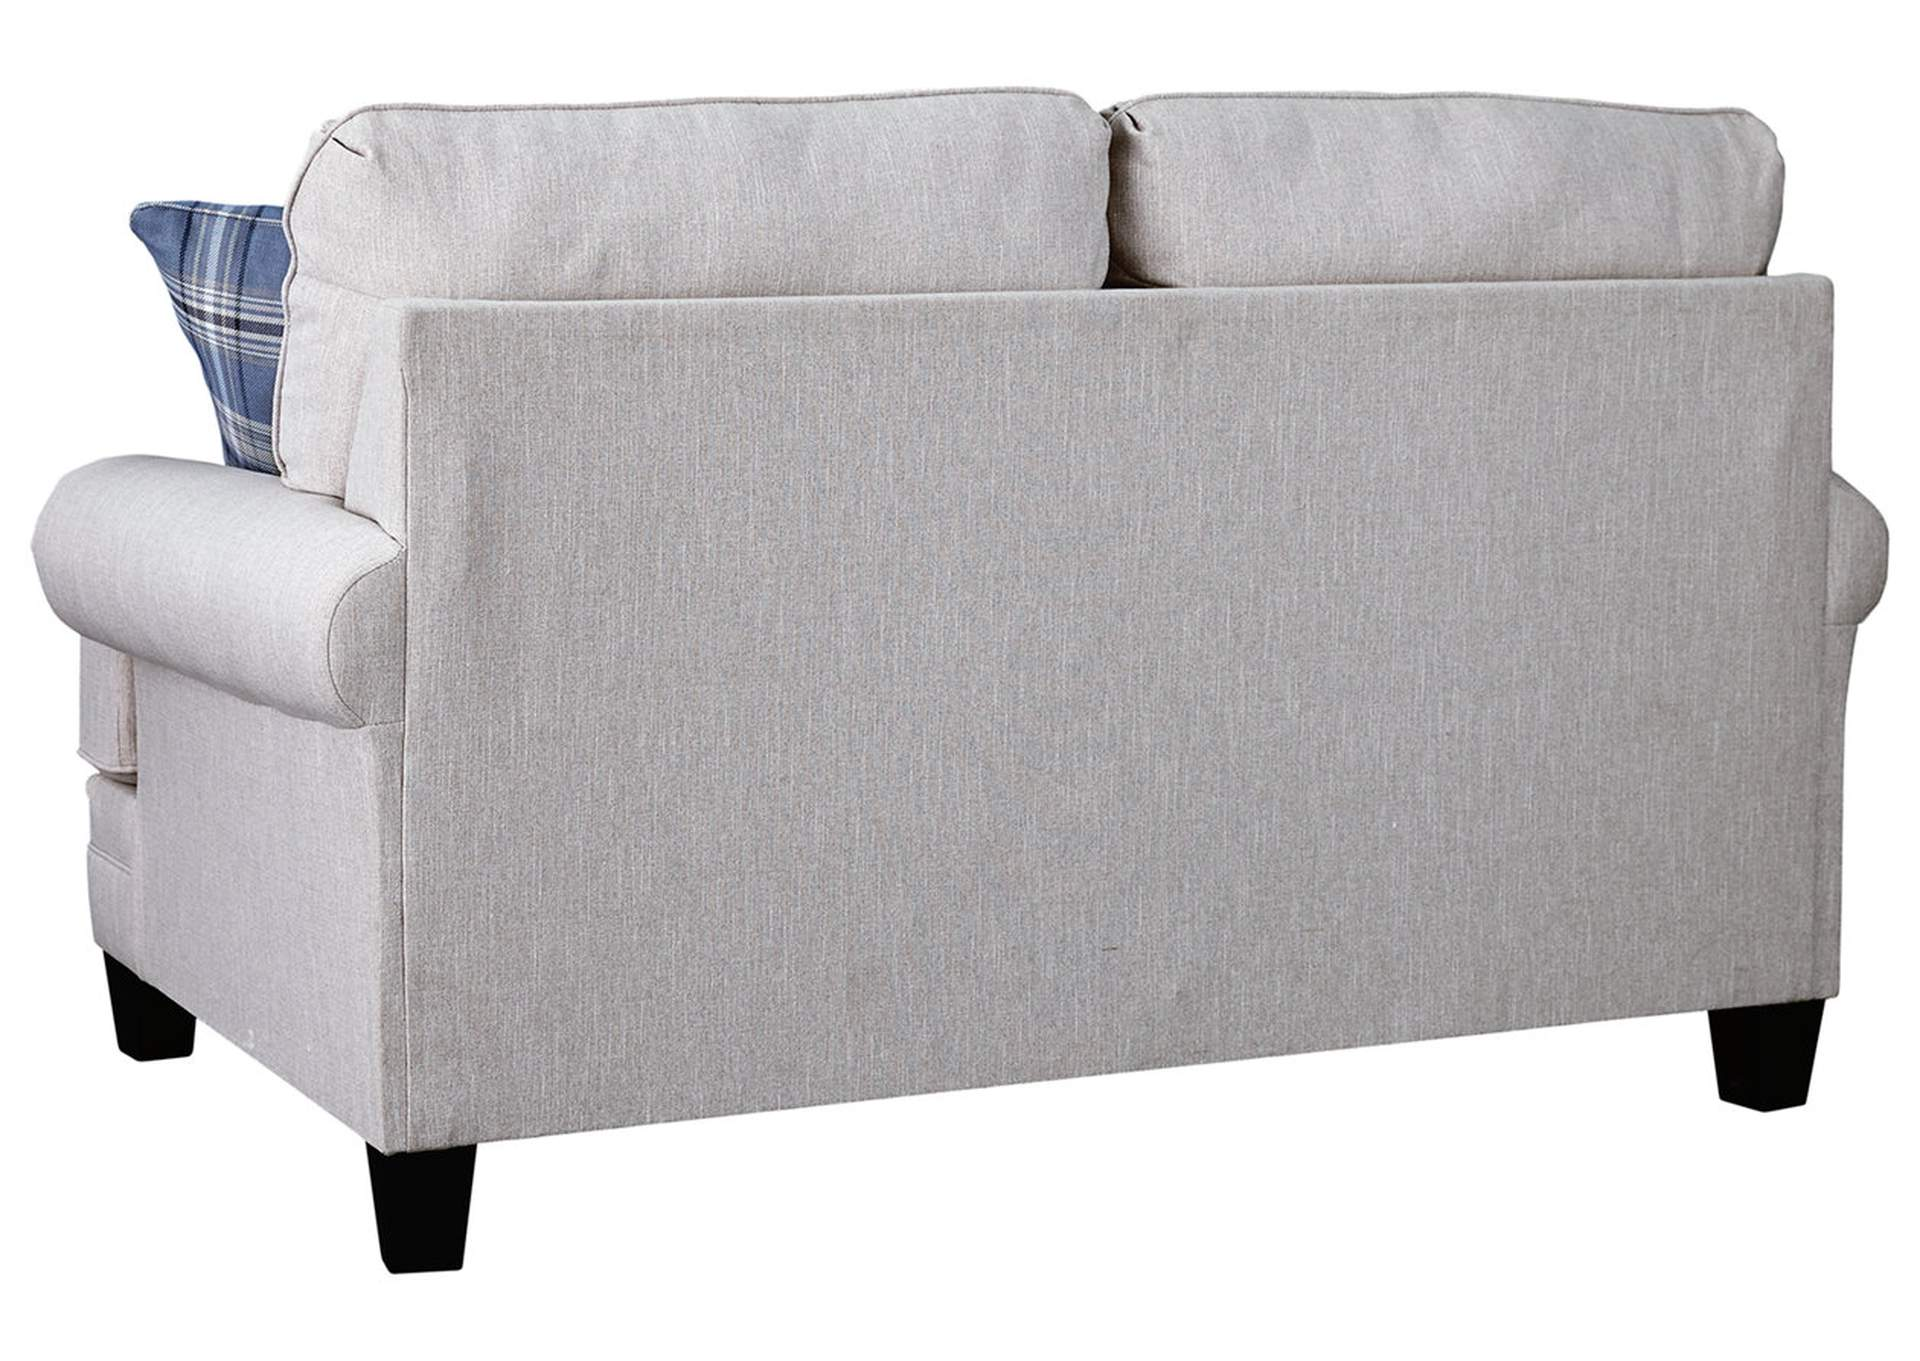 Reevesville Silver Loveseat,Ashley